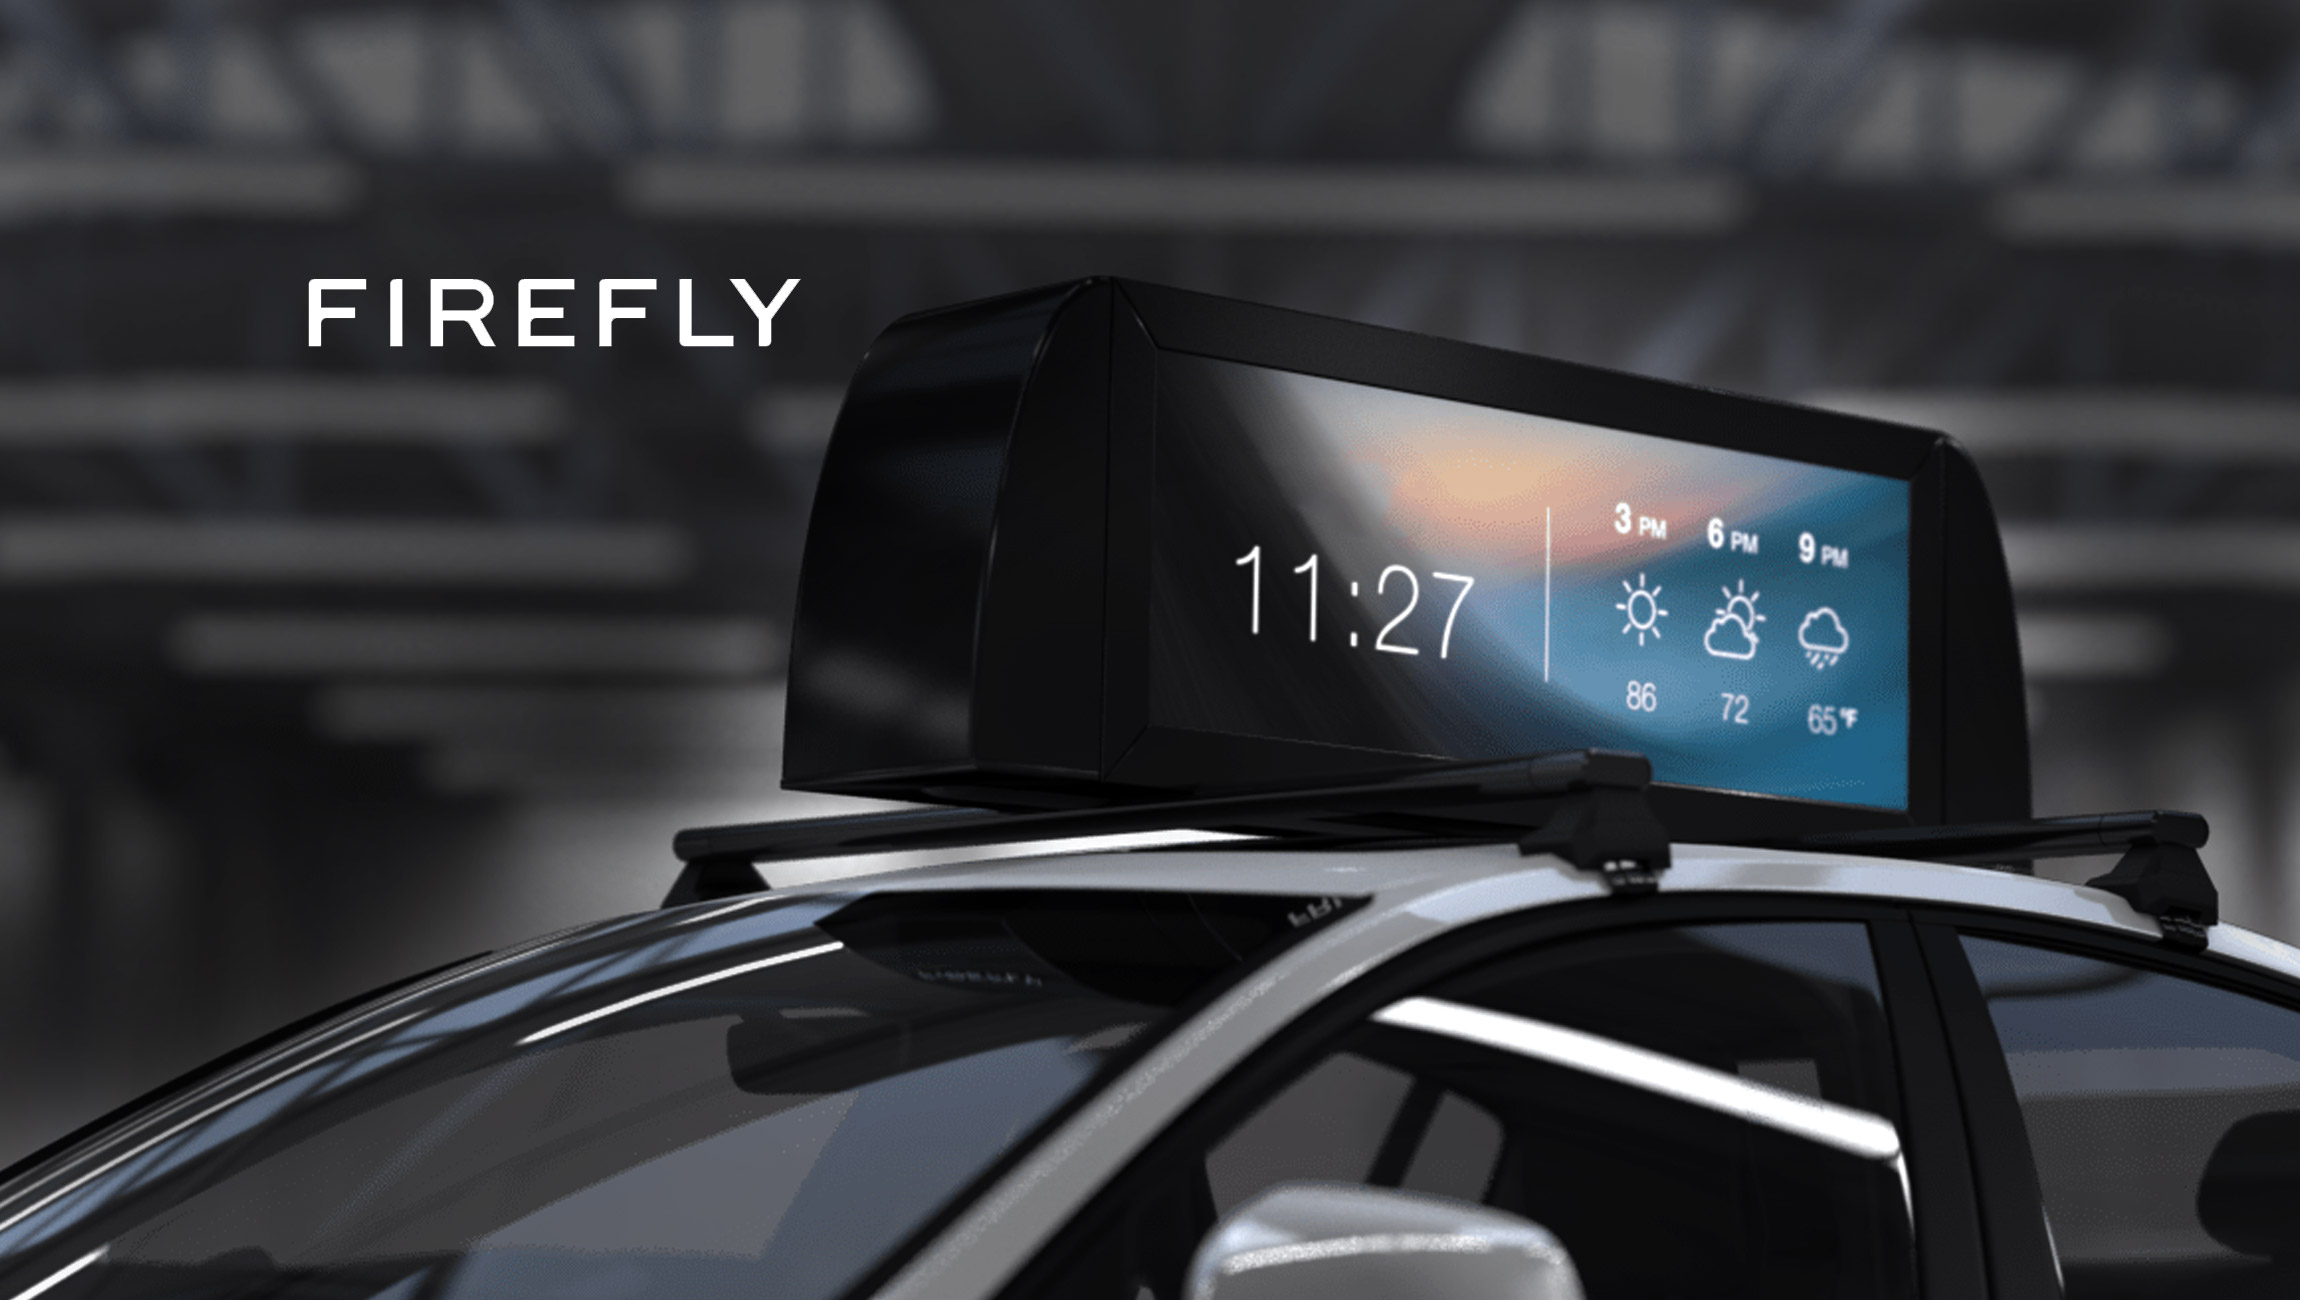 Firefly Recruits Former Google and Clear Channel Execs to Spearhead Measurement and Analytics for Fastest-Growing Media Platform in US